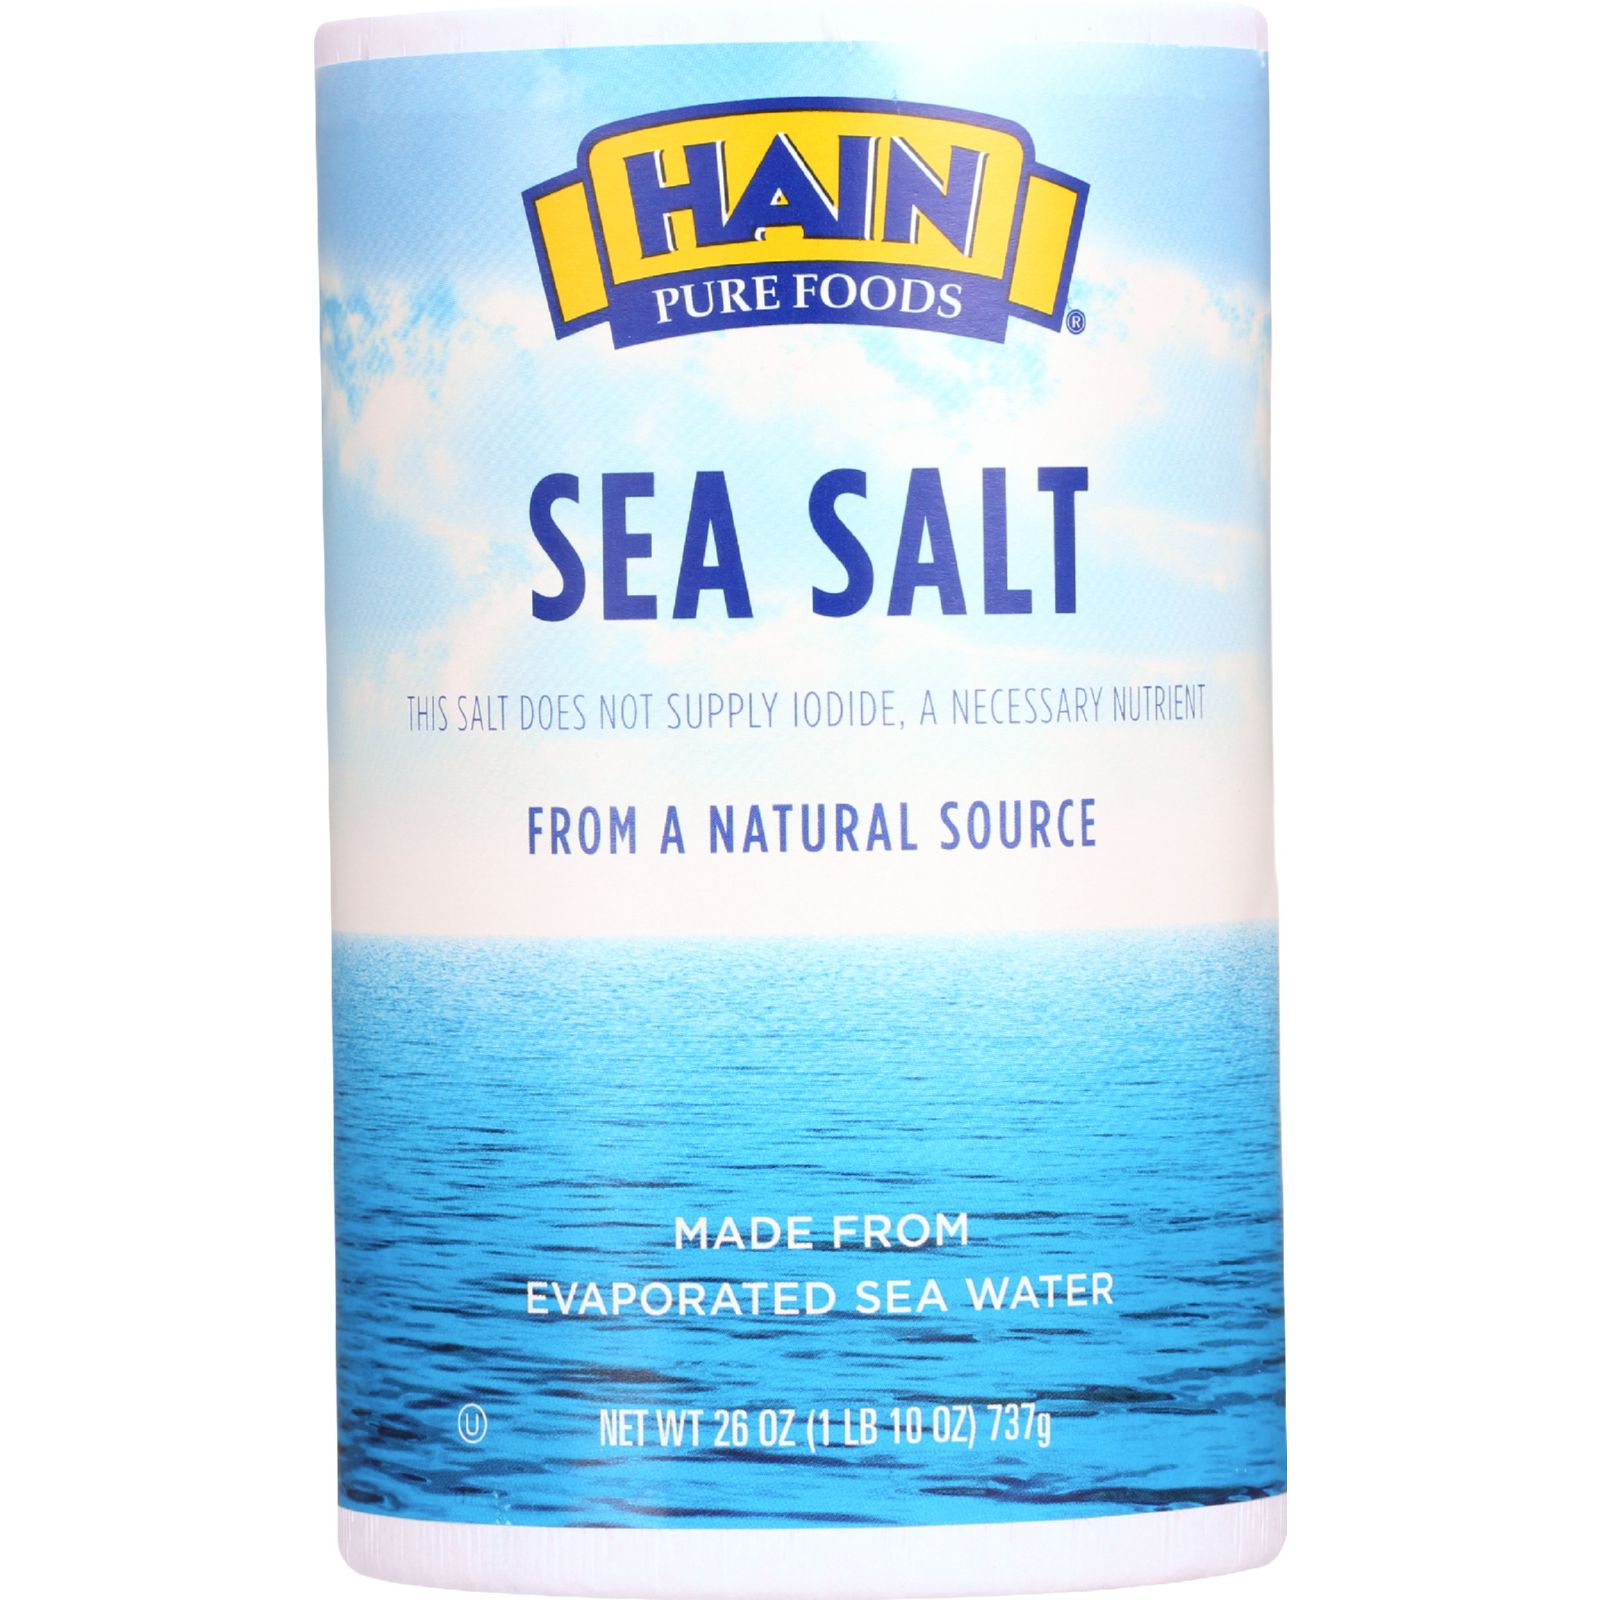 Hain Sea Salt - Plain - 26 oz - 1 each